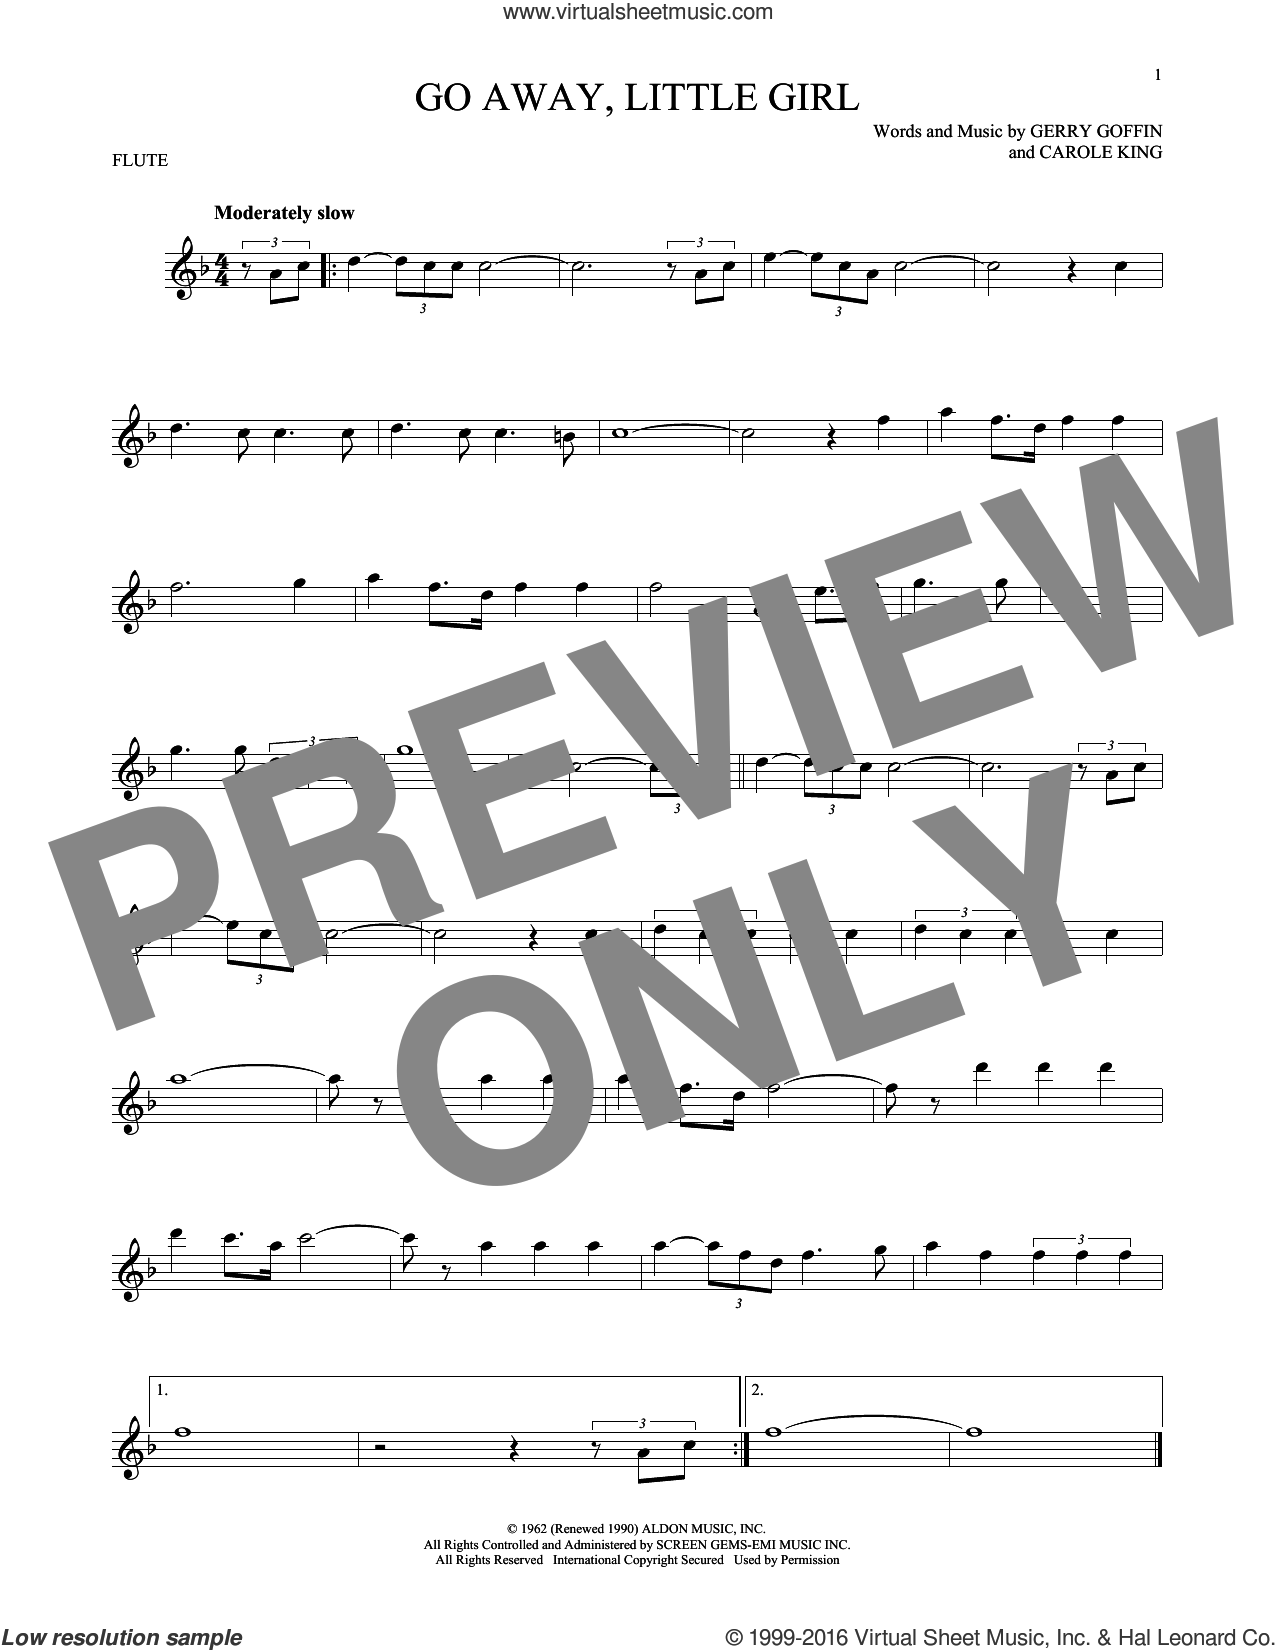 Go Away, Little Girl sheet music for flute solo by Gerry Goffin, Donny Osmond and Carole King. Score Image Preview.